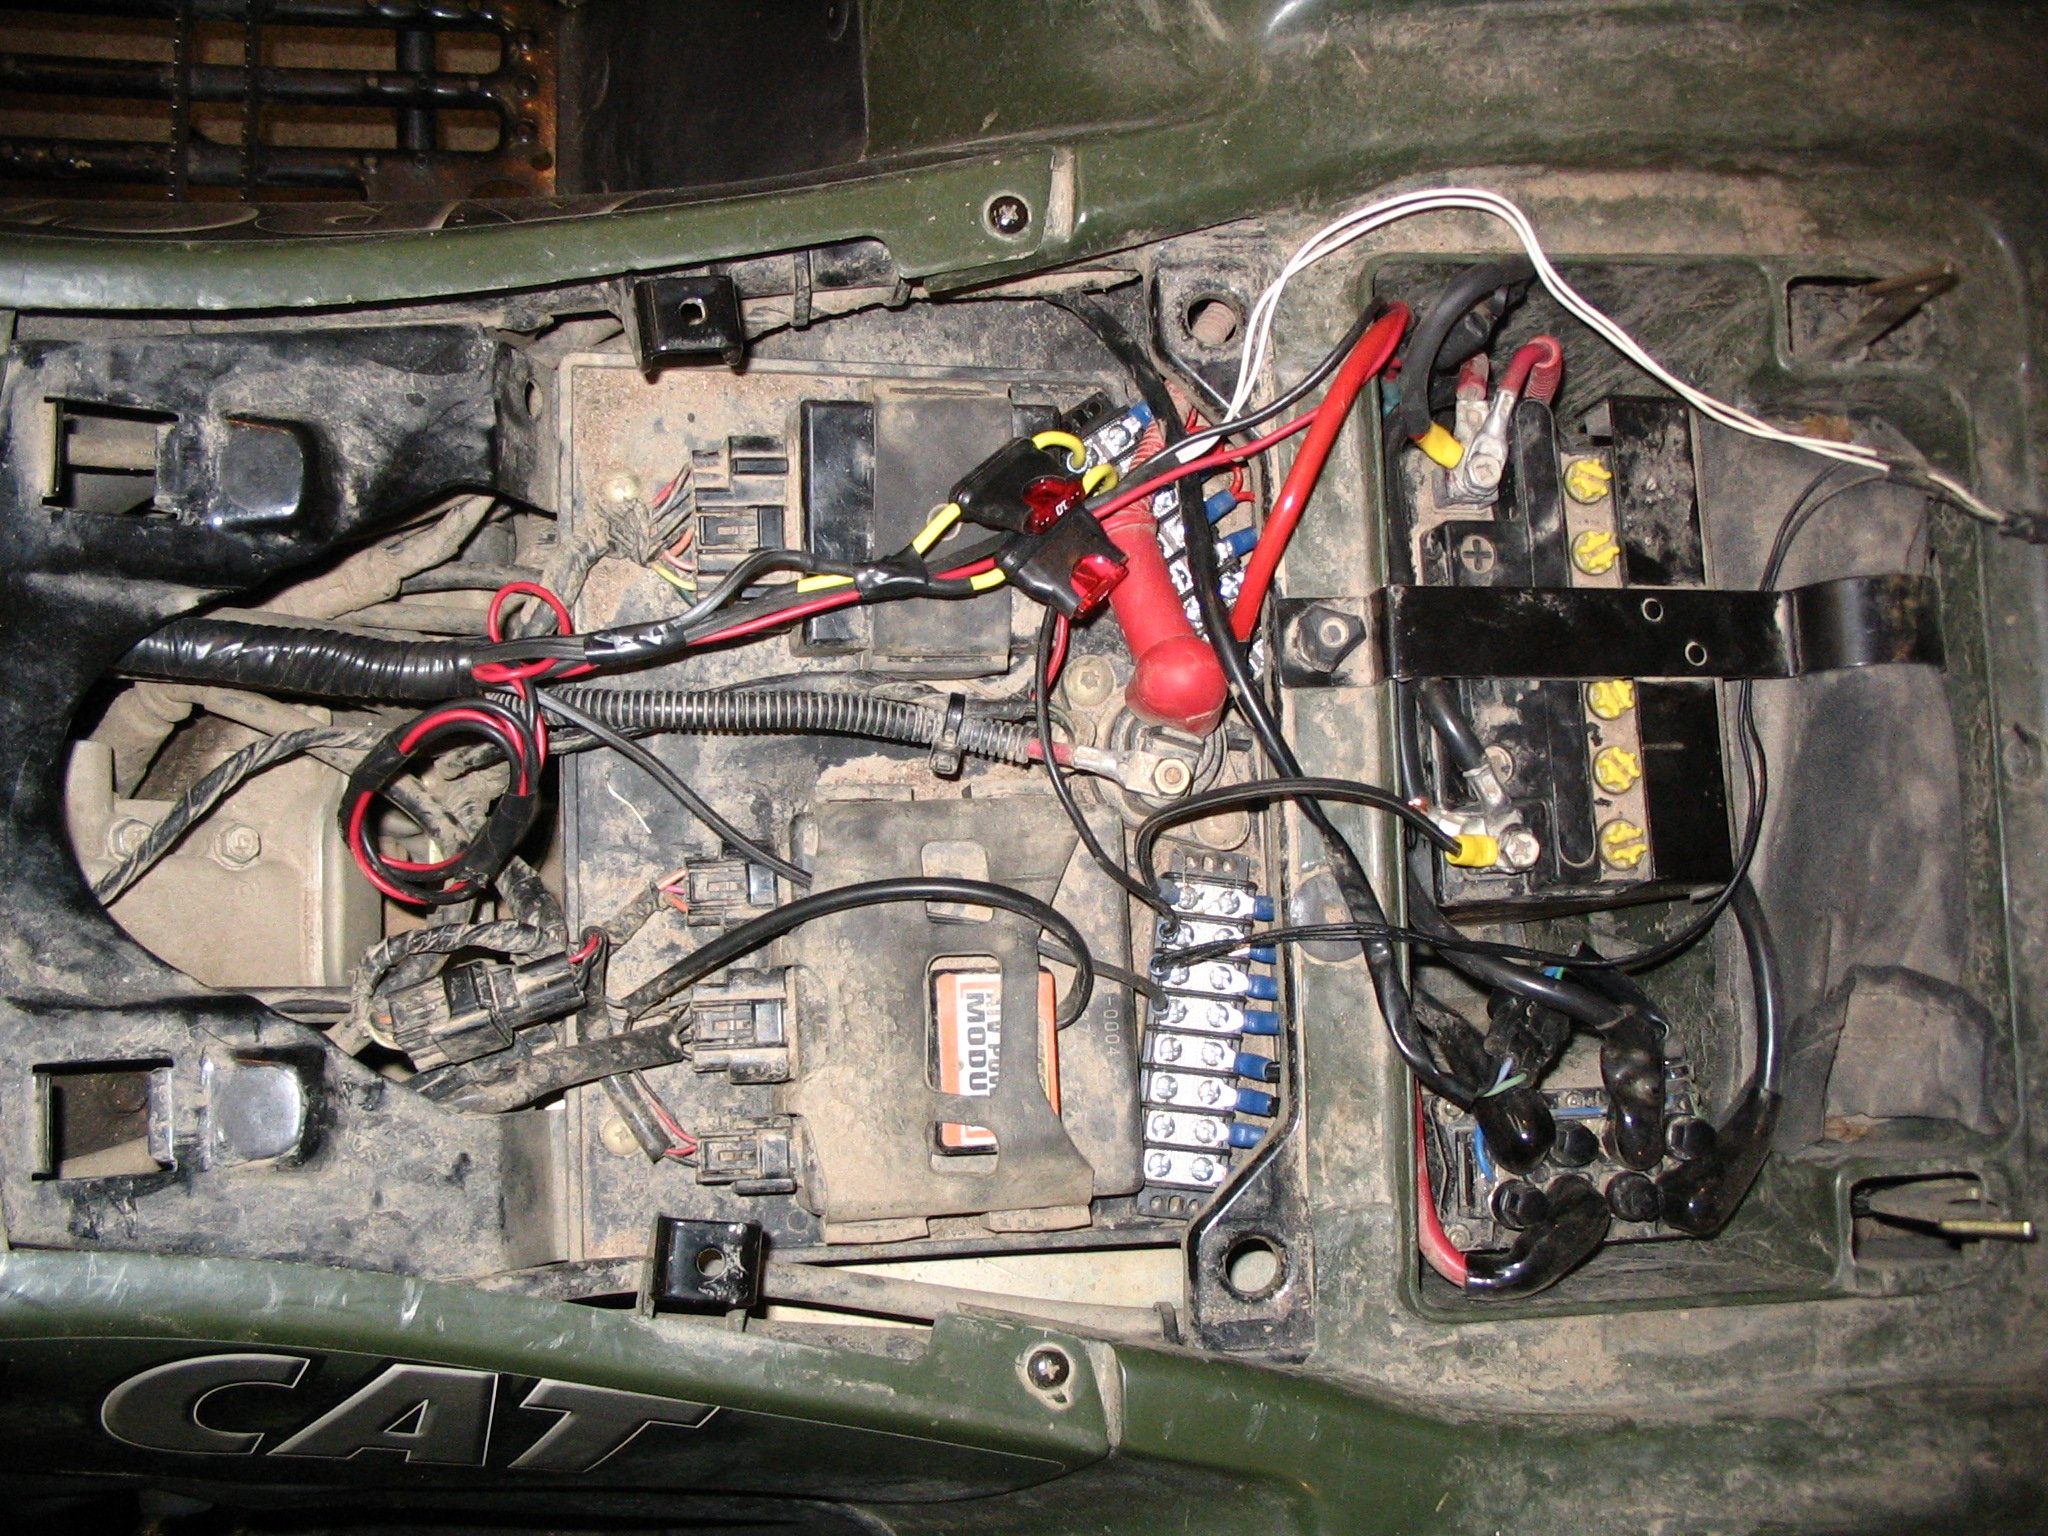 2004 Arctic Cat 650 V2 Wiring Diagram Manual Of Ignition Controlled Power Mod Arcticchat Com Forum Rh